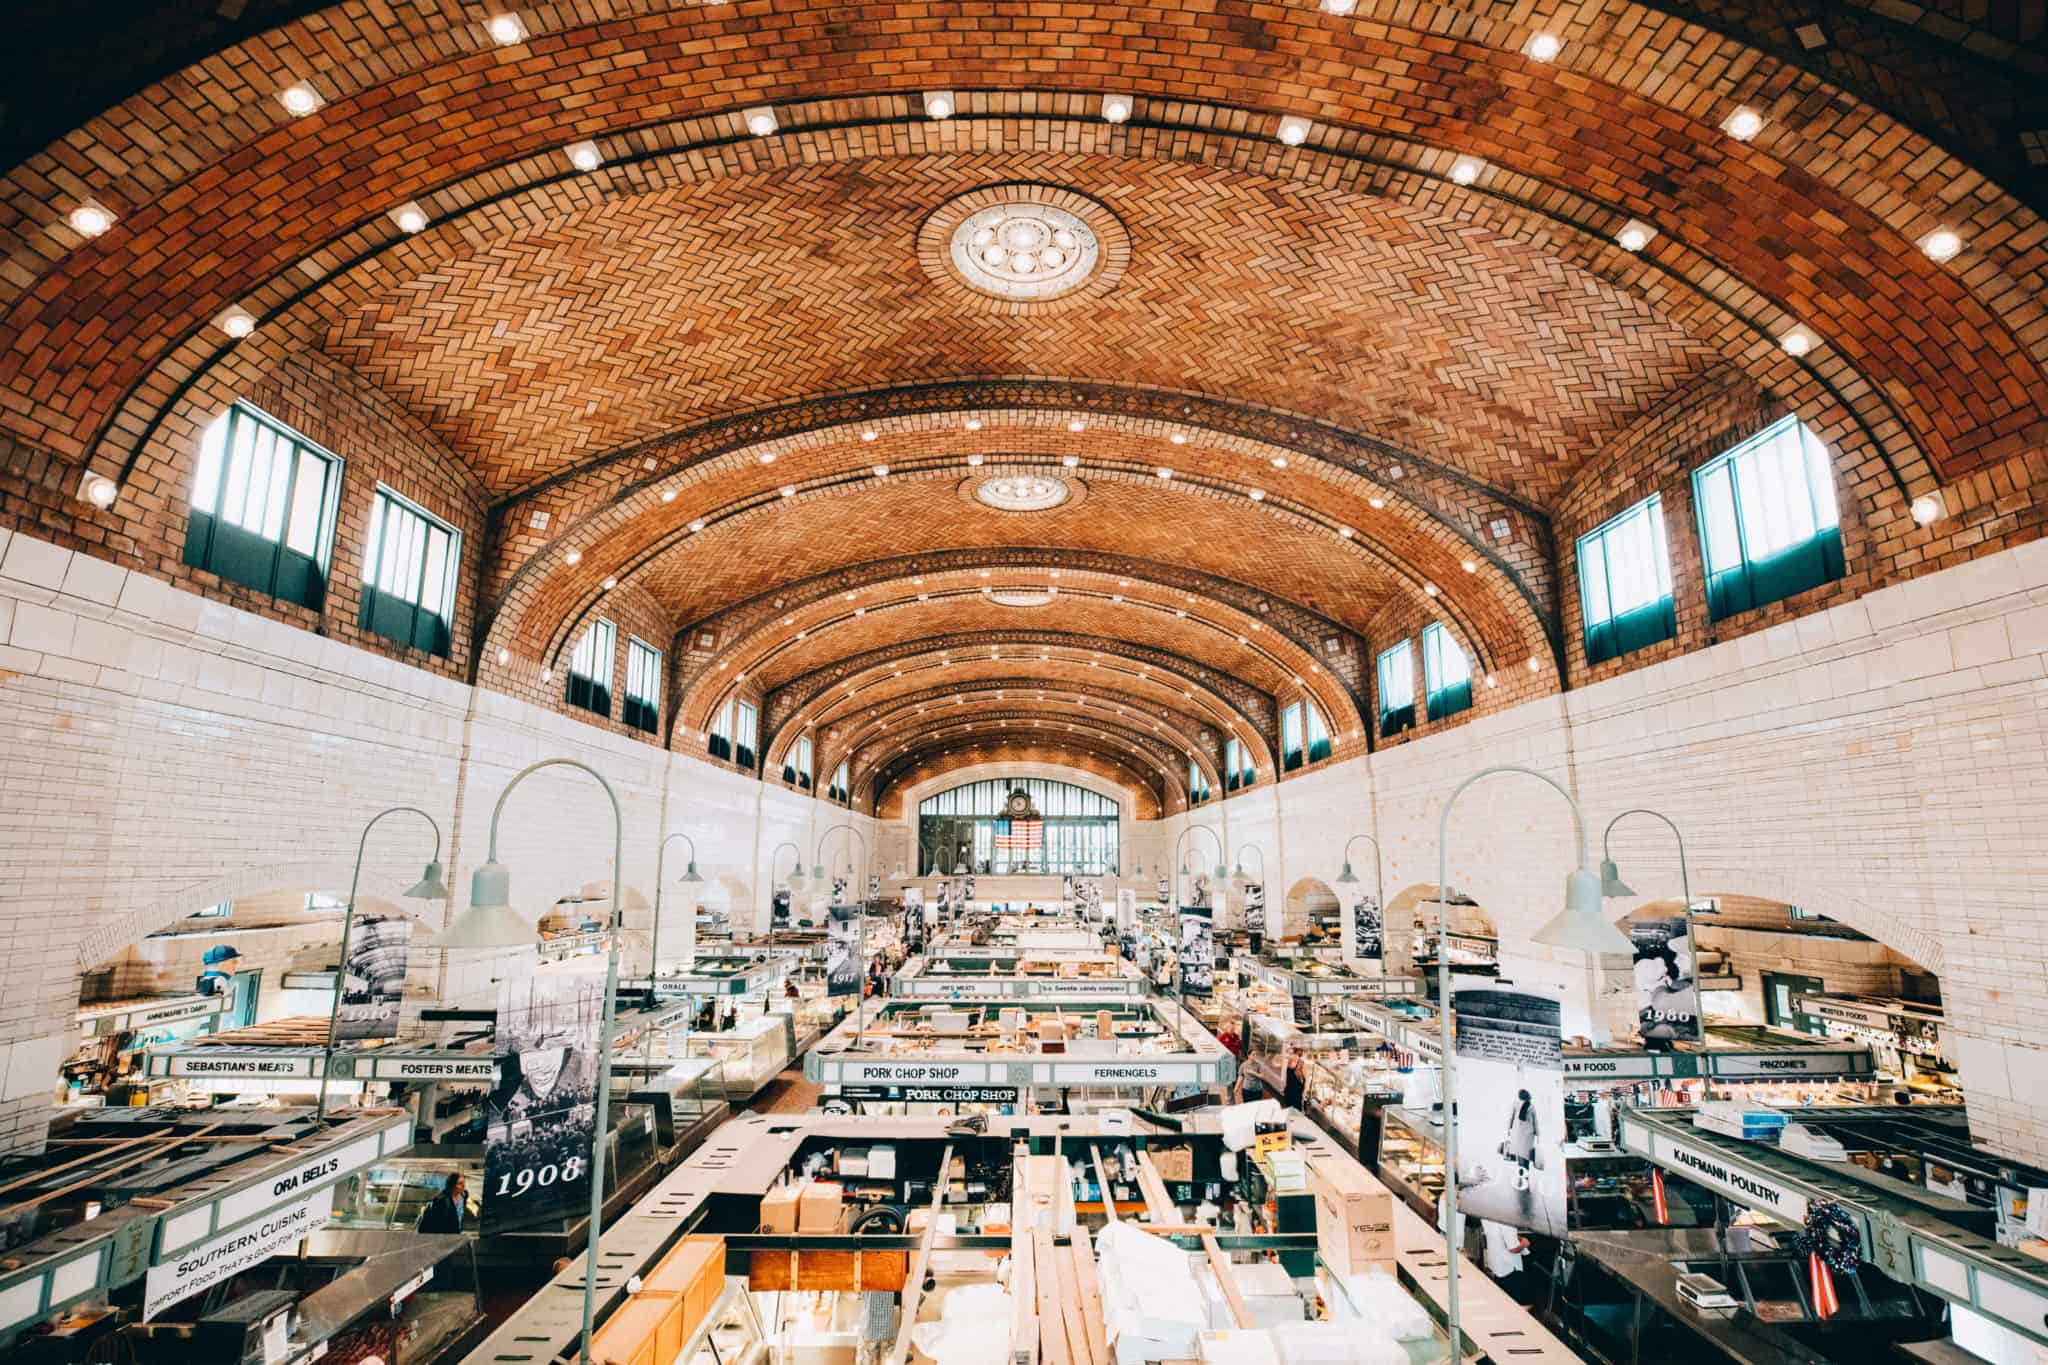 20 Must-See Instagram Spots In Cleveland, Ohio To Snap The